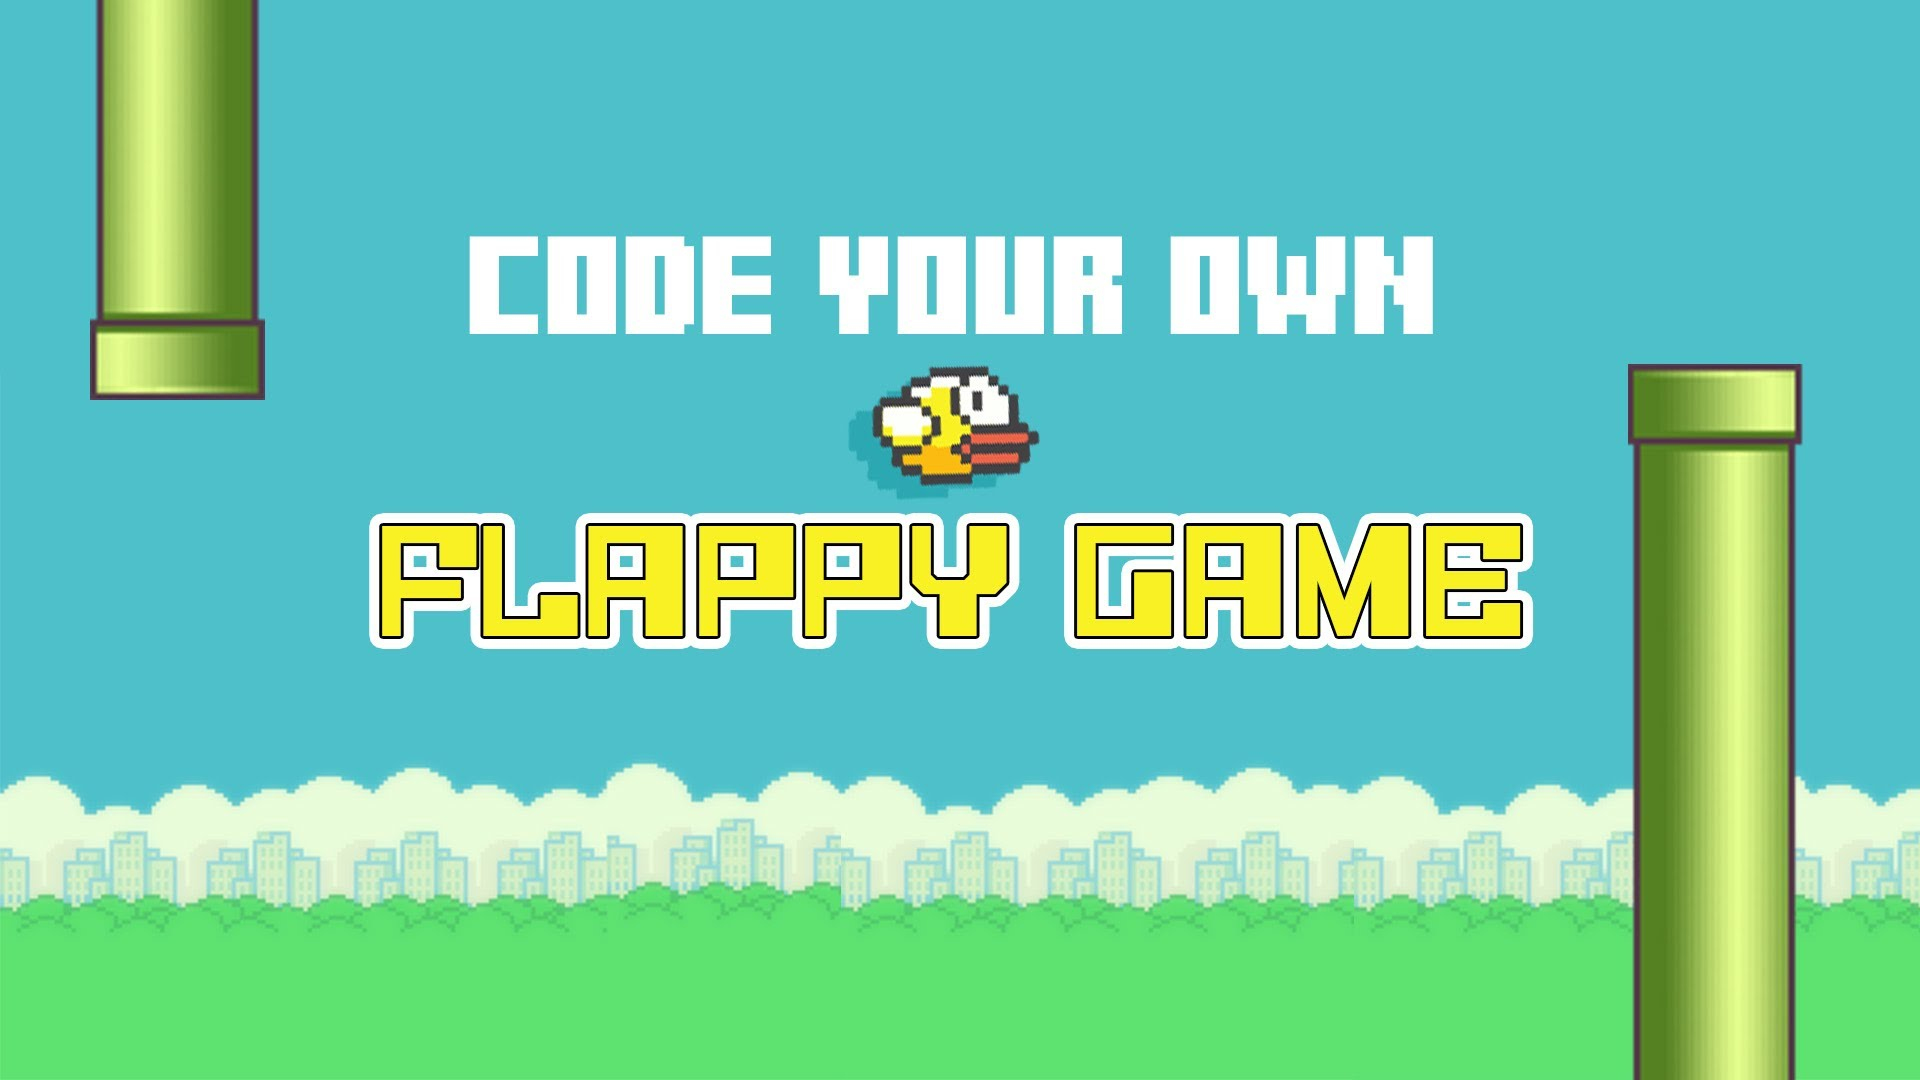 Code org lets kids develop their own Flappy Bird game